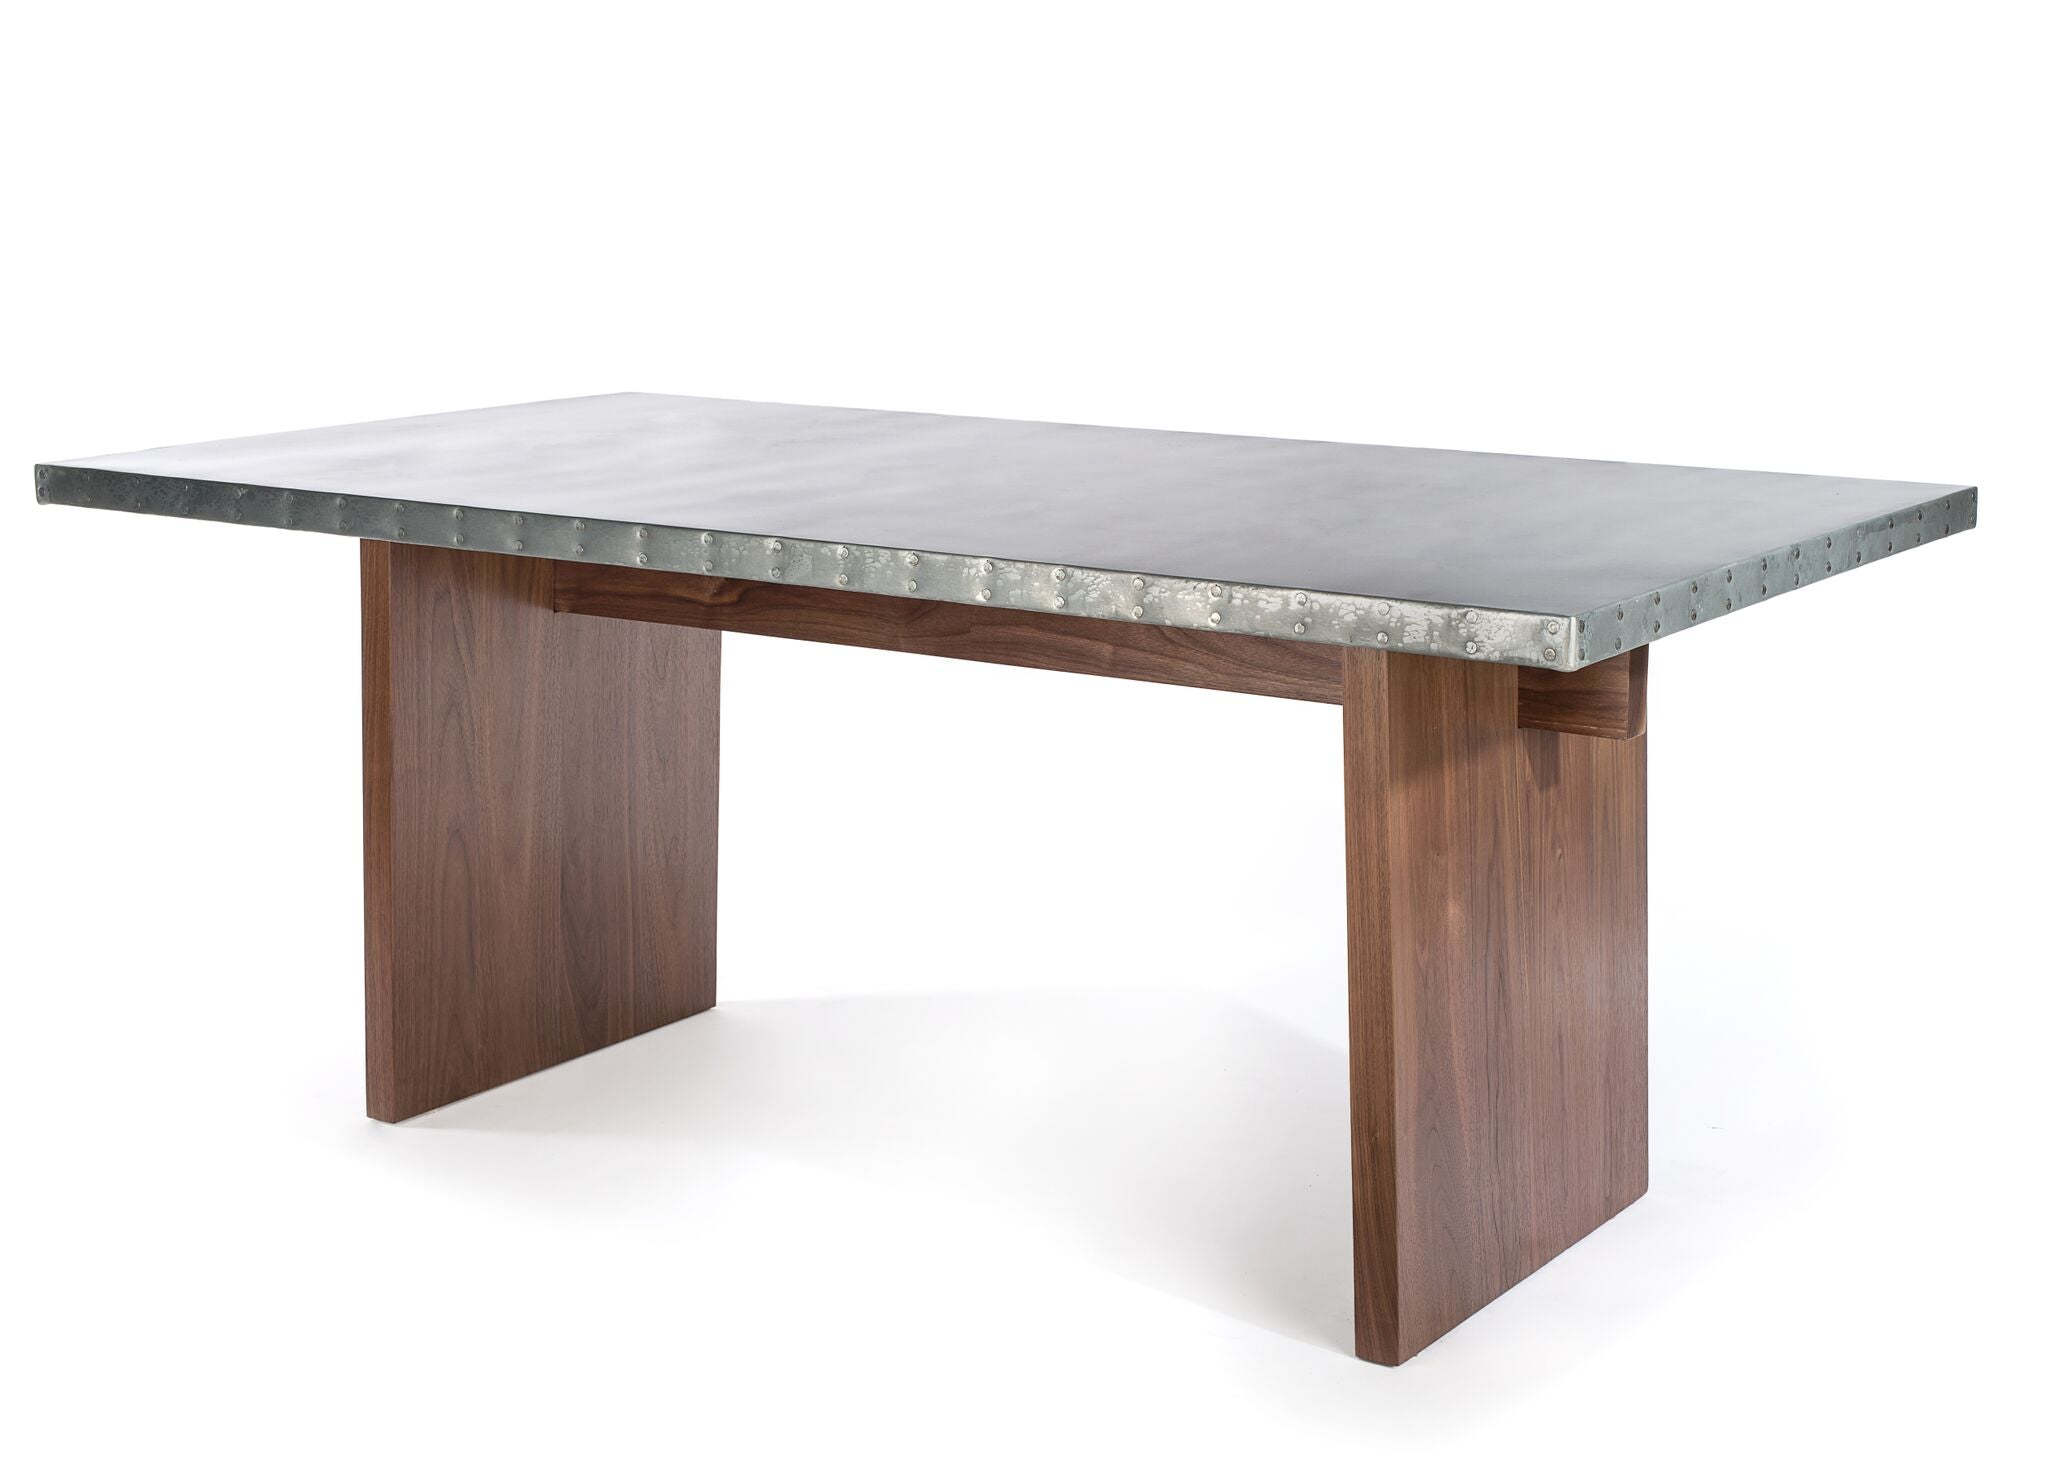 "Zinc Rectangular Table | Sonoma Trestle Table | CLASSIC | Dark Brown on Reclaimed Oak | CUSTOM SIZE 60""L 37""W 30""H 